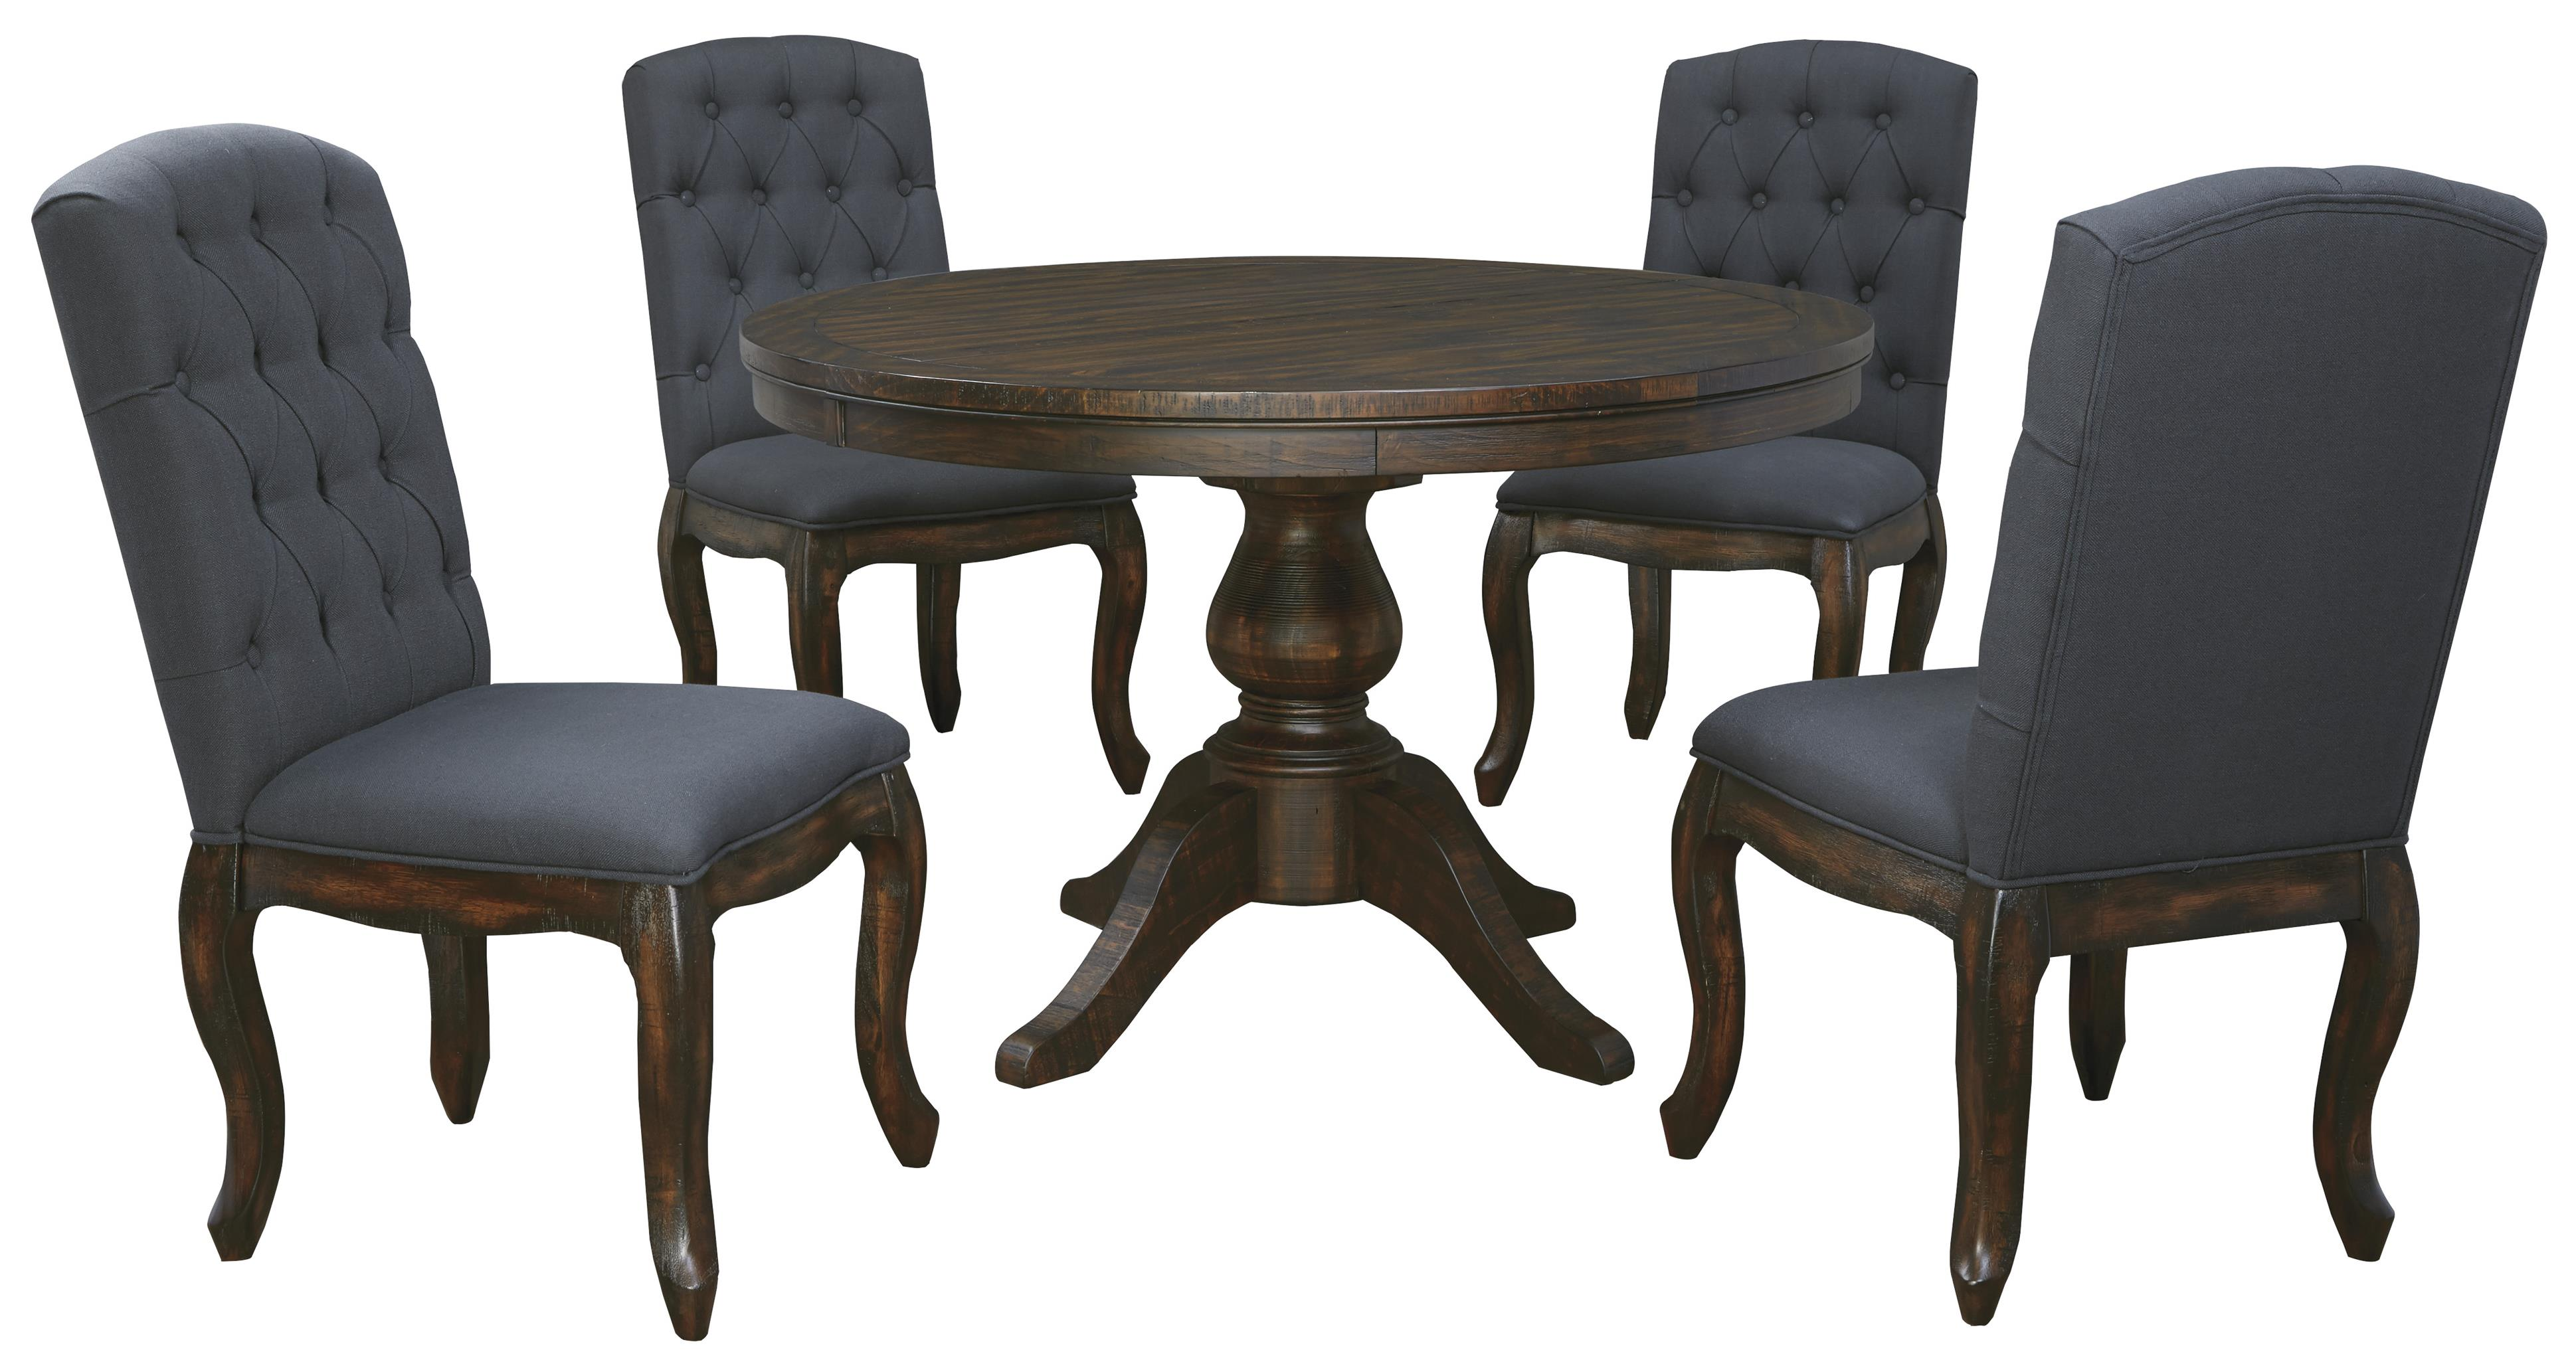 Signature Design by Ashley Trudell 5-Piece Round Dining Table Set - Item Number  sc 1 st  Belfort Furniture & Trudell 5-Piece Round Dining Table Set with Upholstered Side Chairs ...